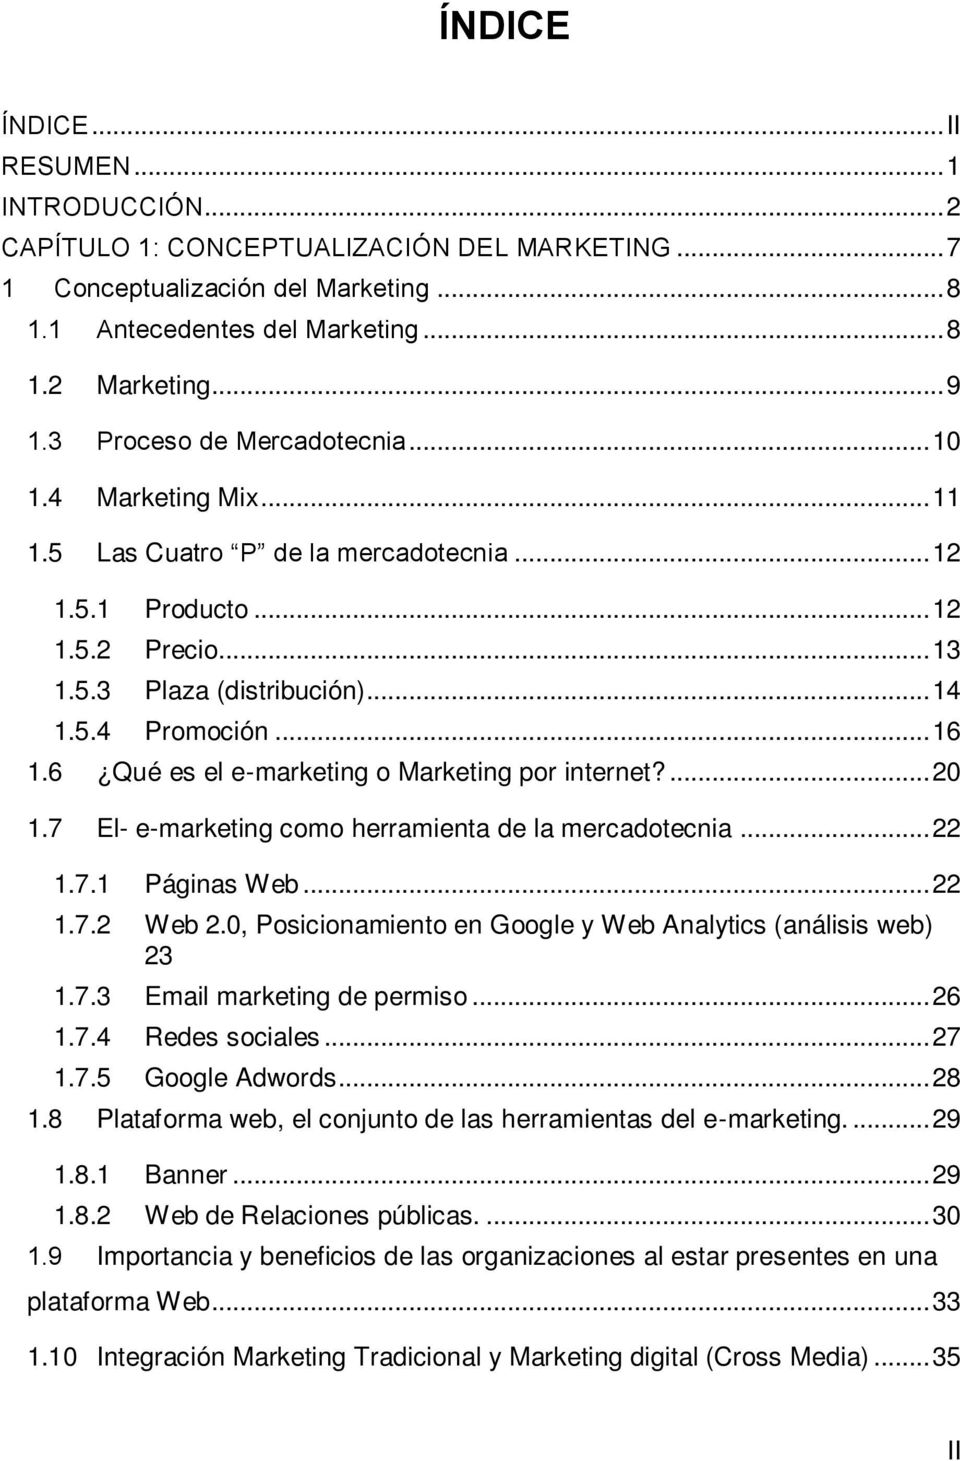 6 Qué es el e-marketing o Marketing por internet?... 20 1.7 El- e-marketing como herramienta de la mercadotecnia... 22 1.7.1 Páginas Web... 22 1.7.2 Web 2.